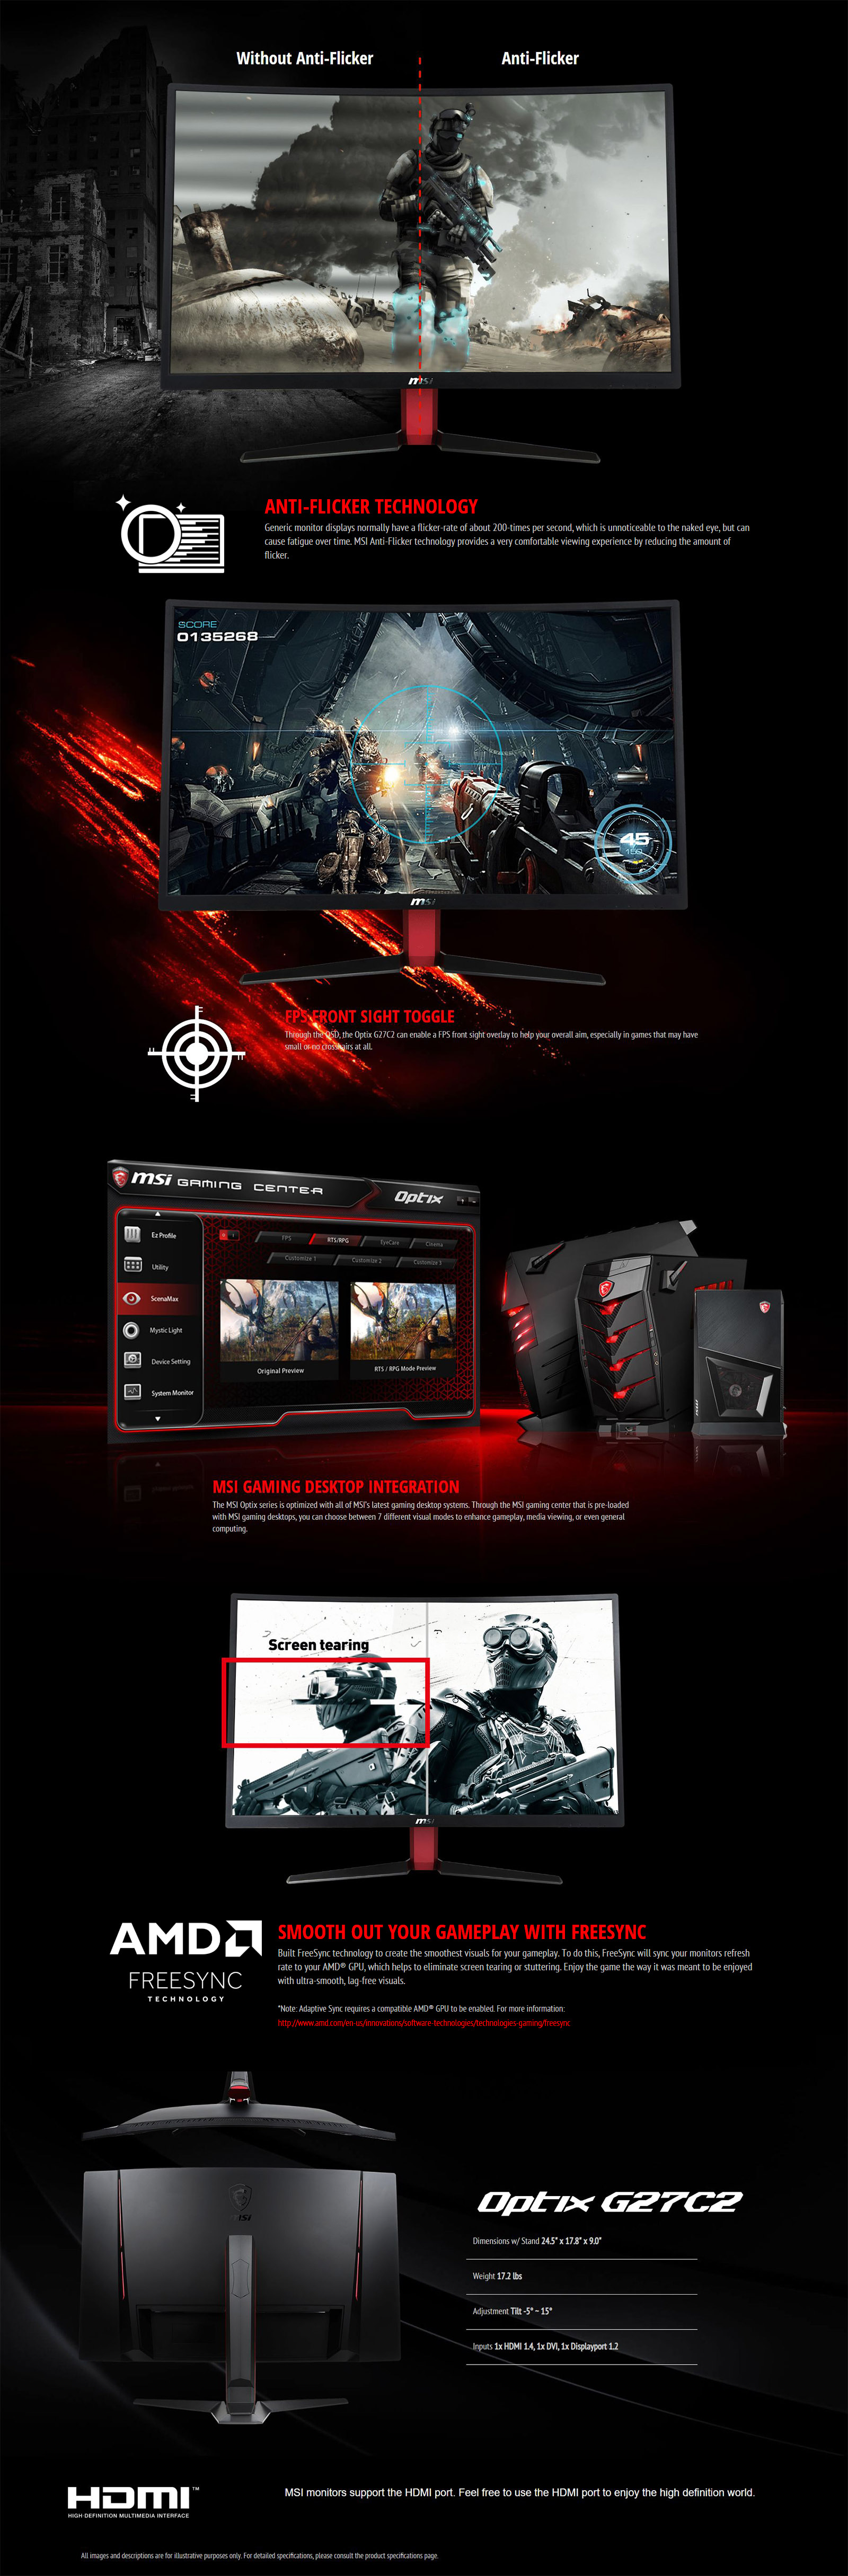 MSI Optix 27in FHD 144Hz LCD Curved Gaming Monitor (G27C2)